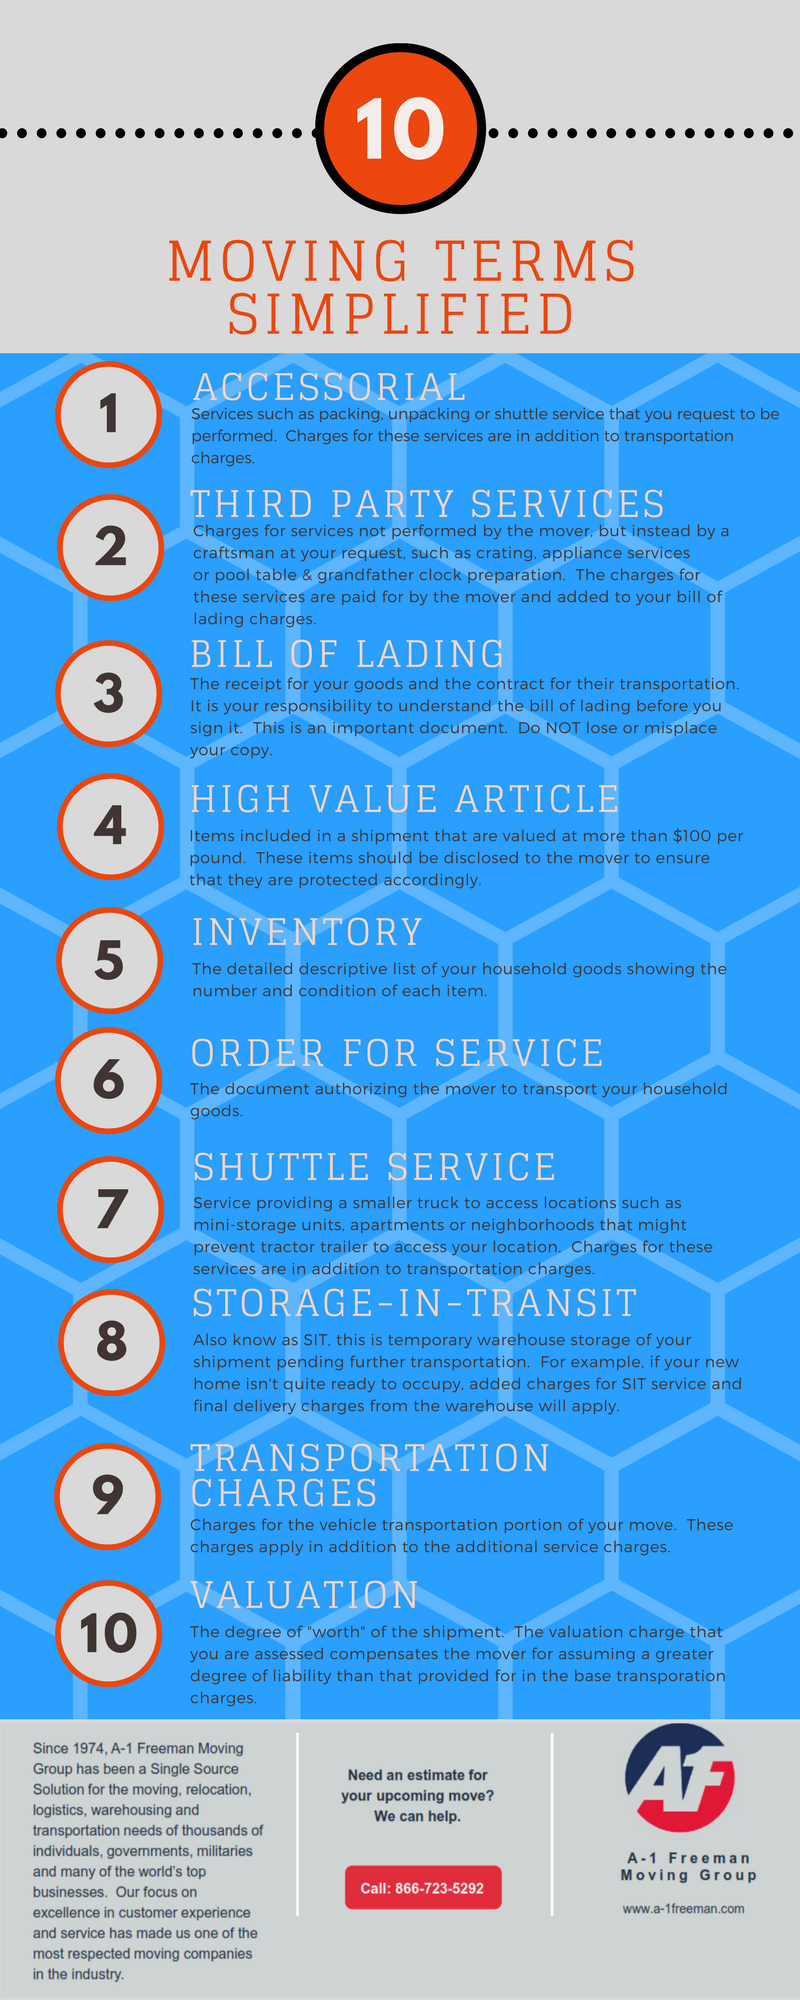 A-1 Freeman Moving Group Wichita Falls Moving Terms Infographic